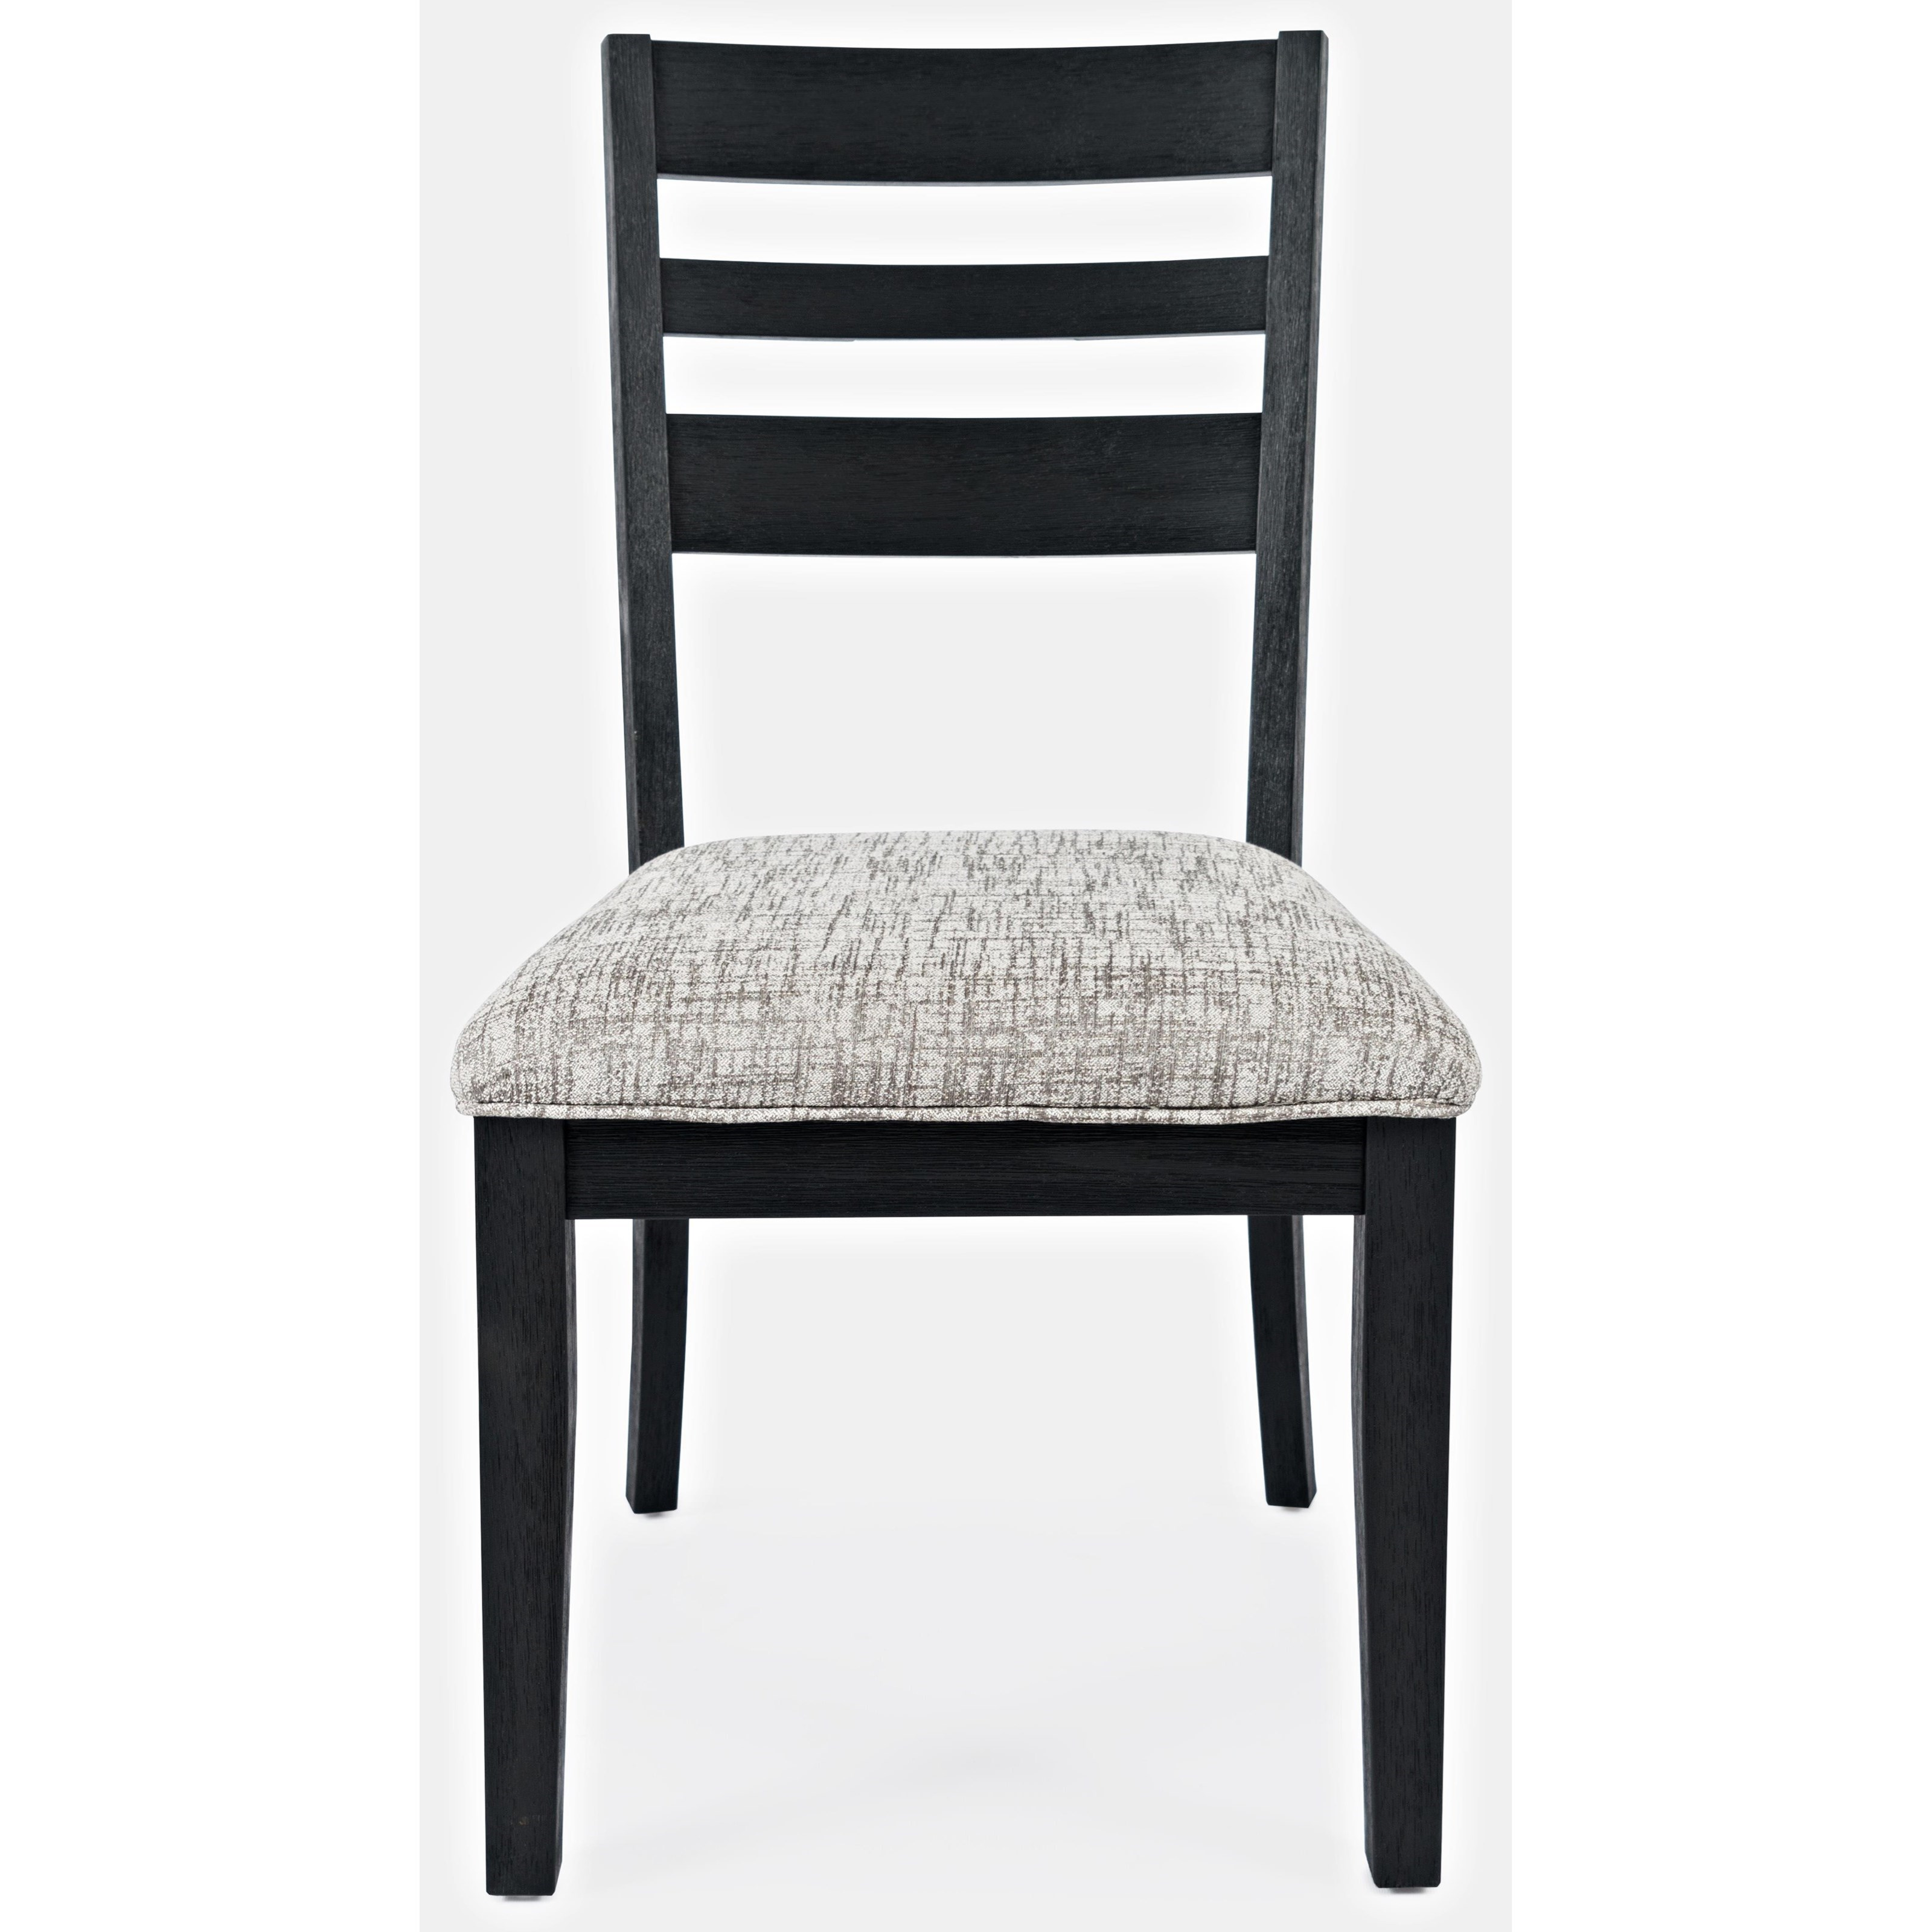 Altamonte Ladderback Chair by Jofran at Home Furnishings Direct